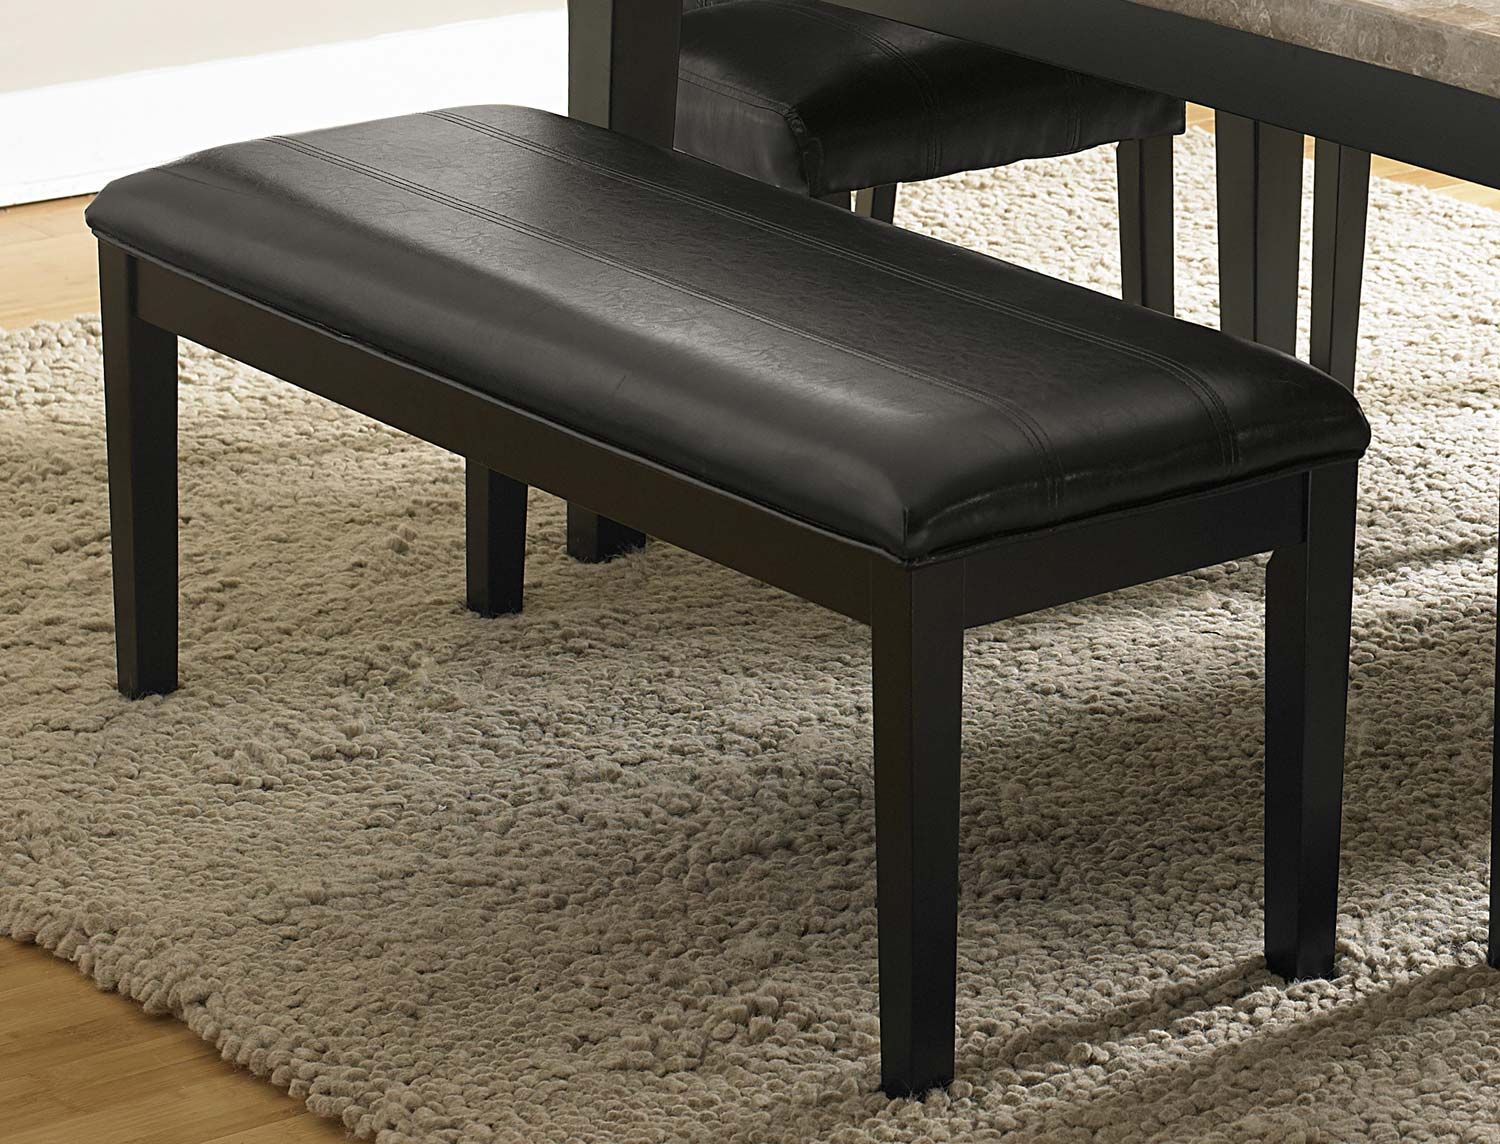 Homelegance Cristo Bench - Dark Brown Bi-Cast Vinyl